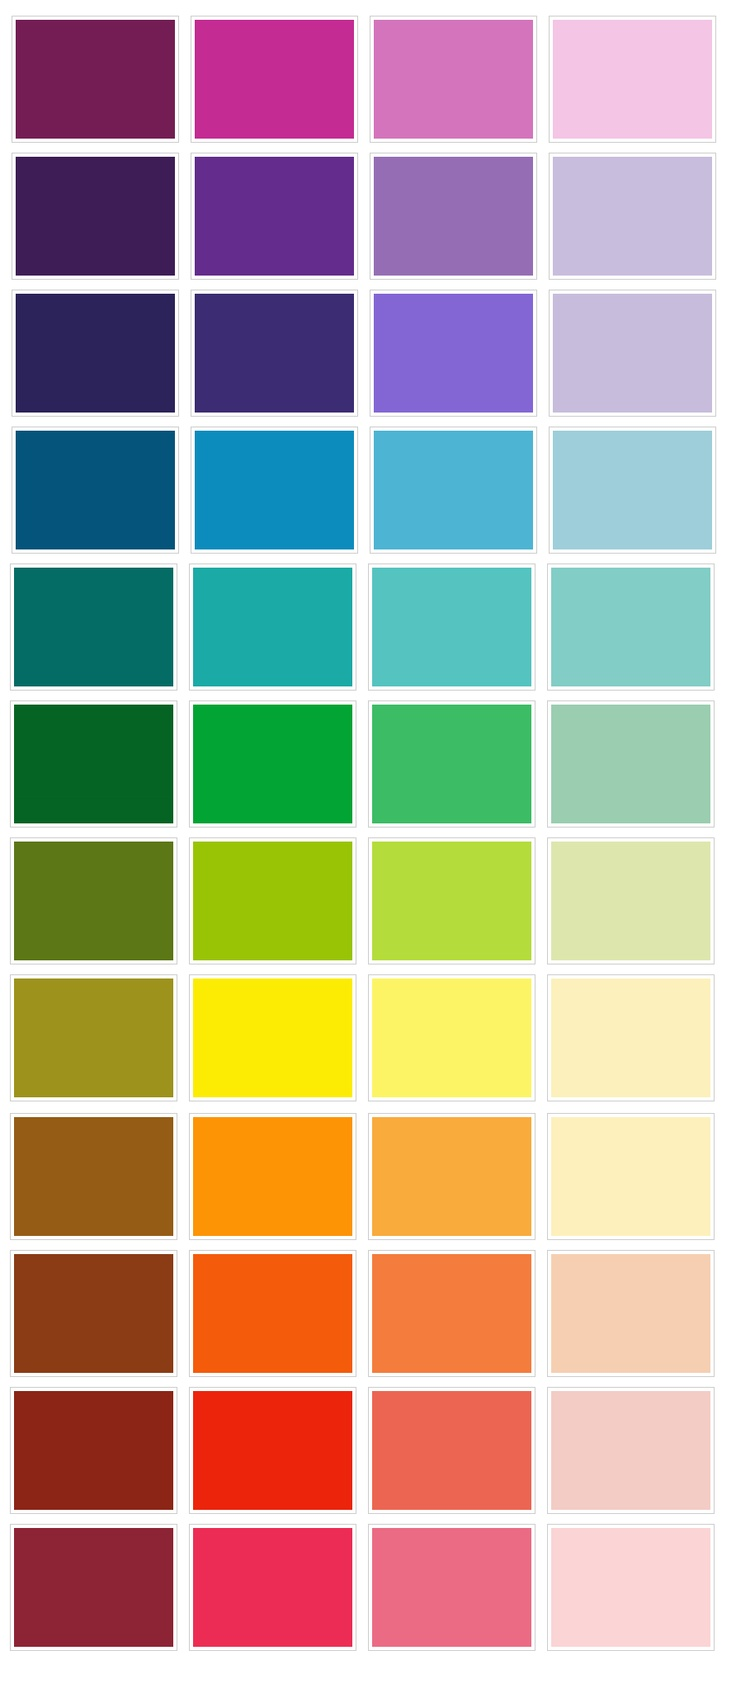 59 best Color - chart images on Pinterest | Color palettes, Color ...